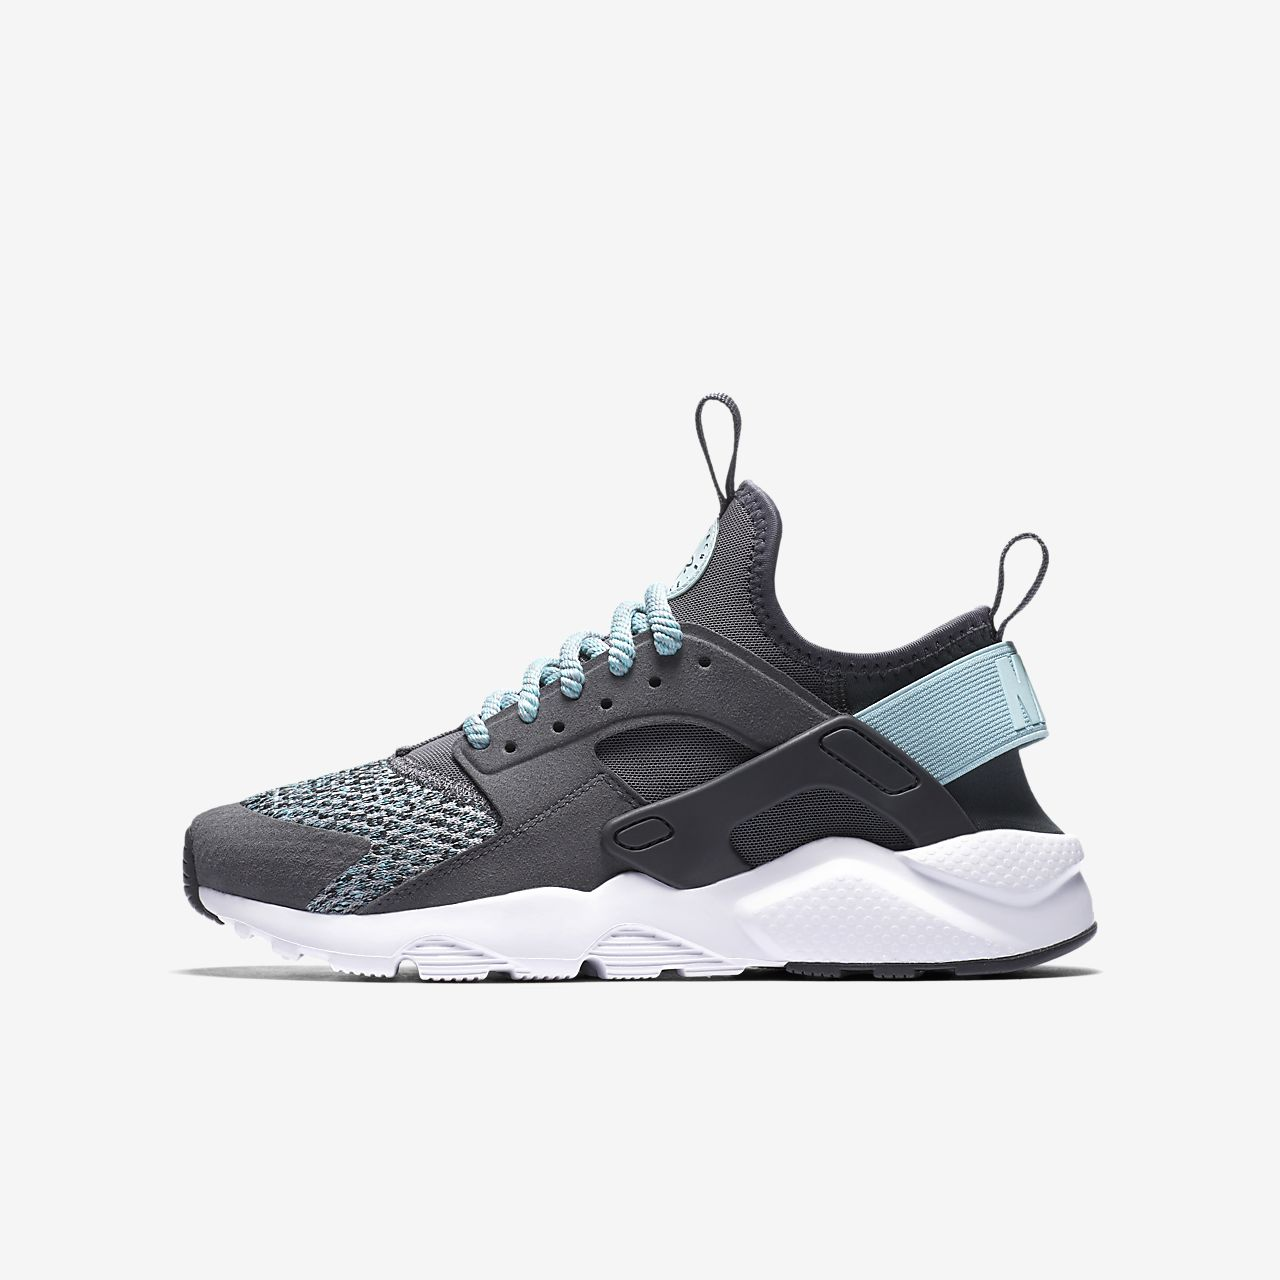 ... Nike Air Huarache Run Ultra SE Older Kids' Shoe